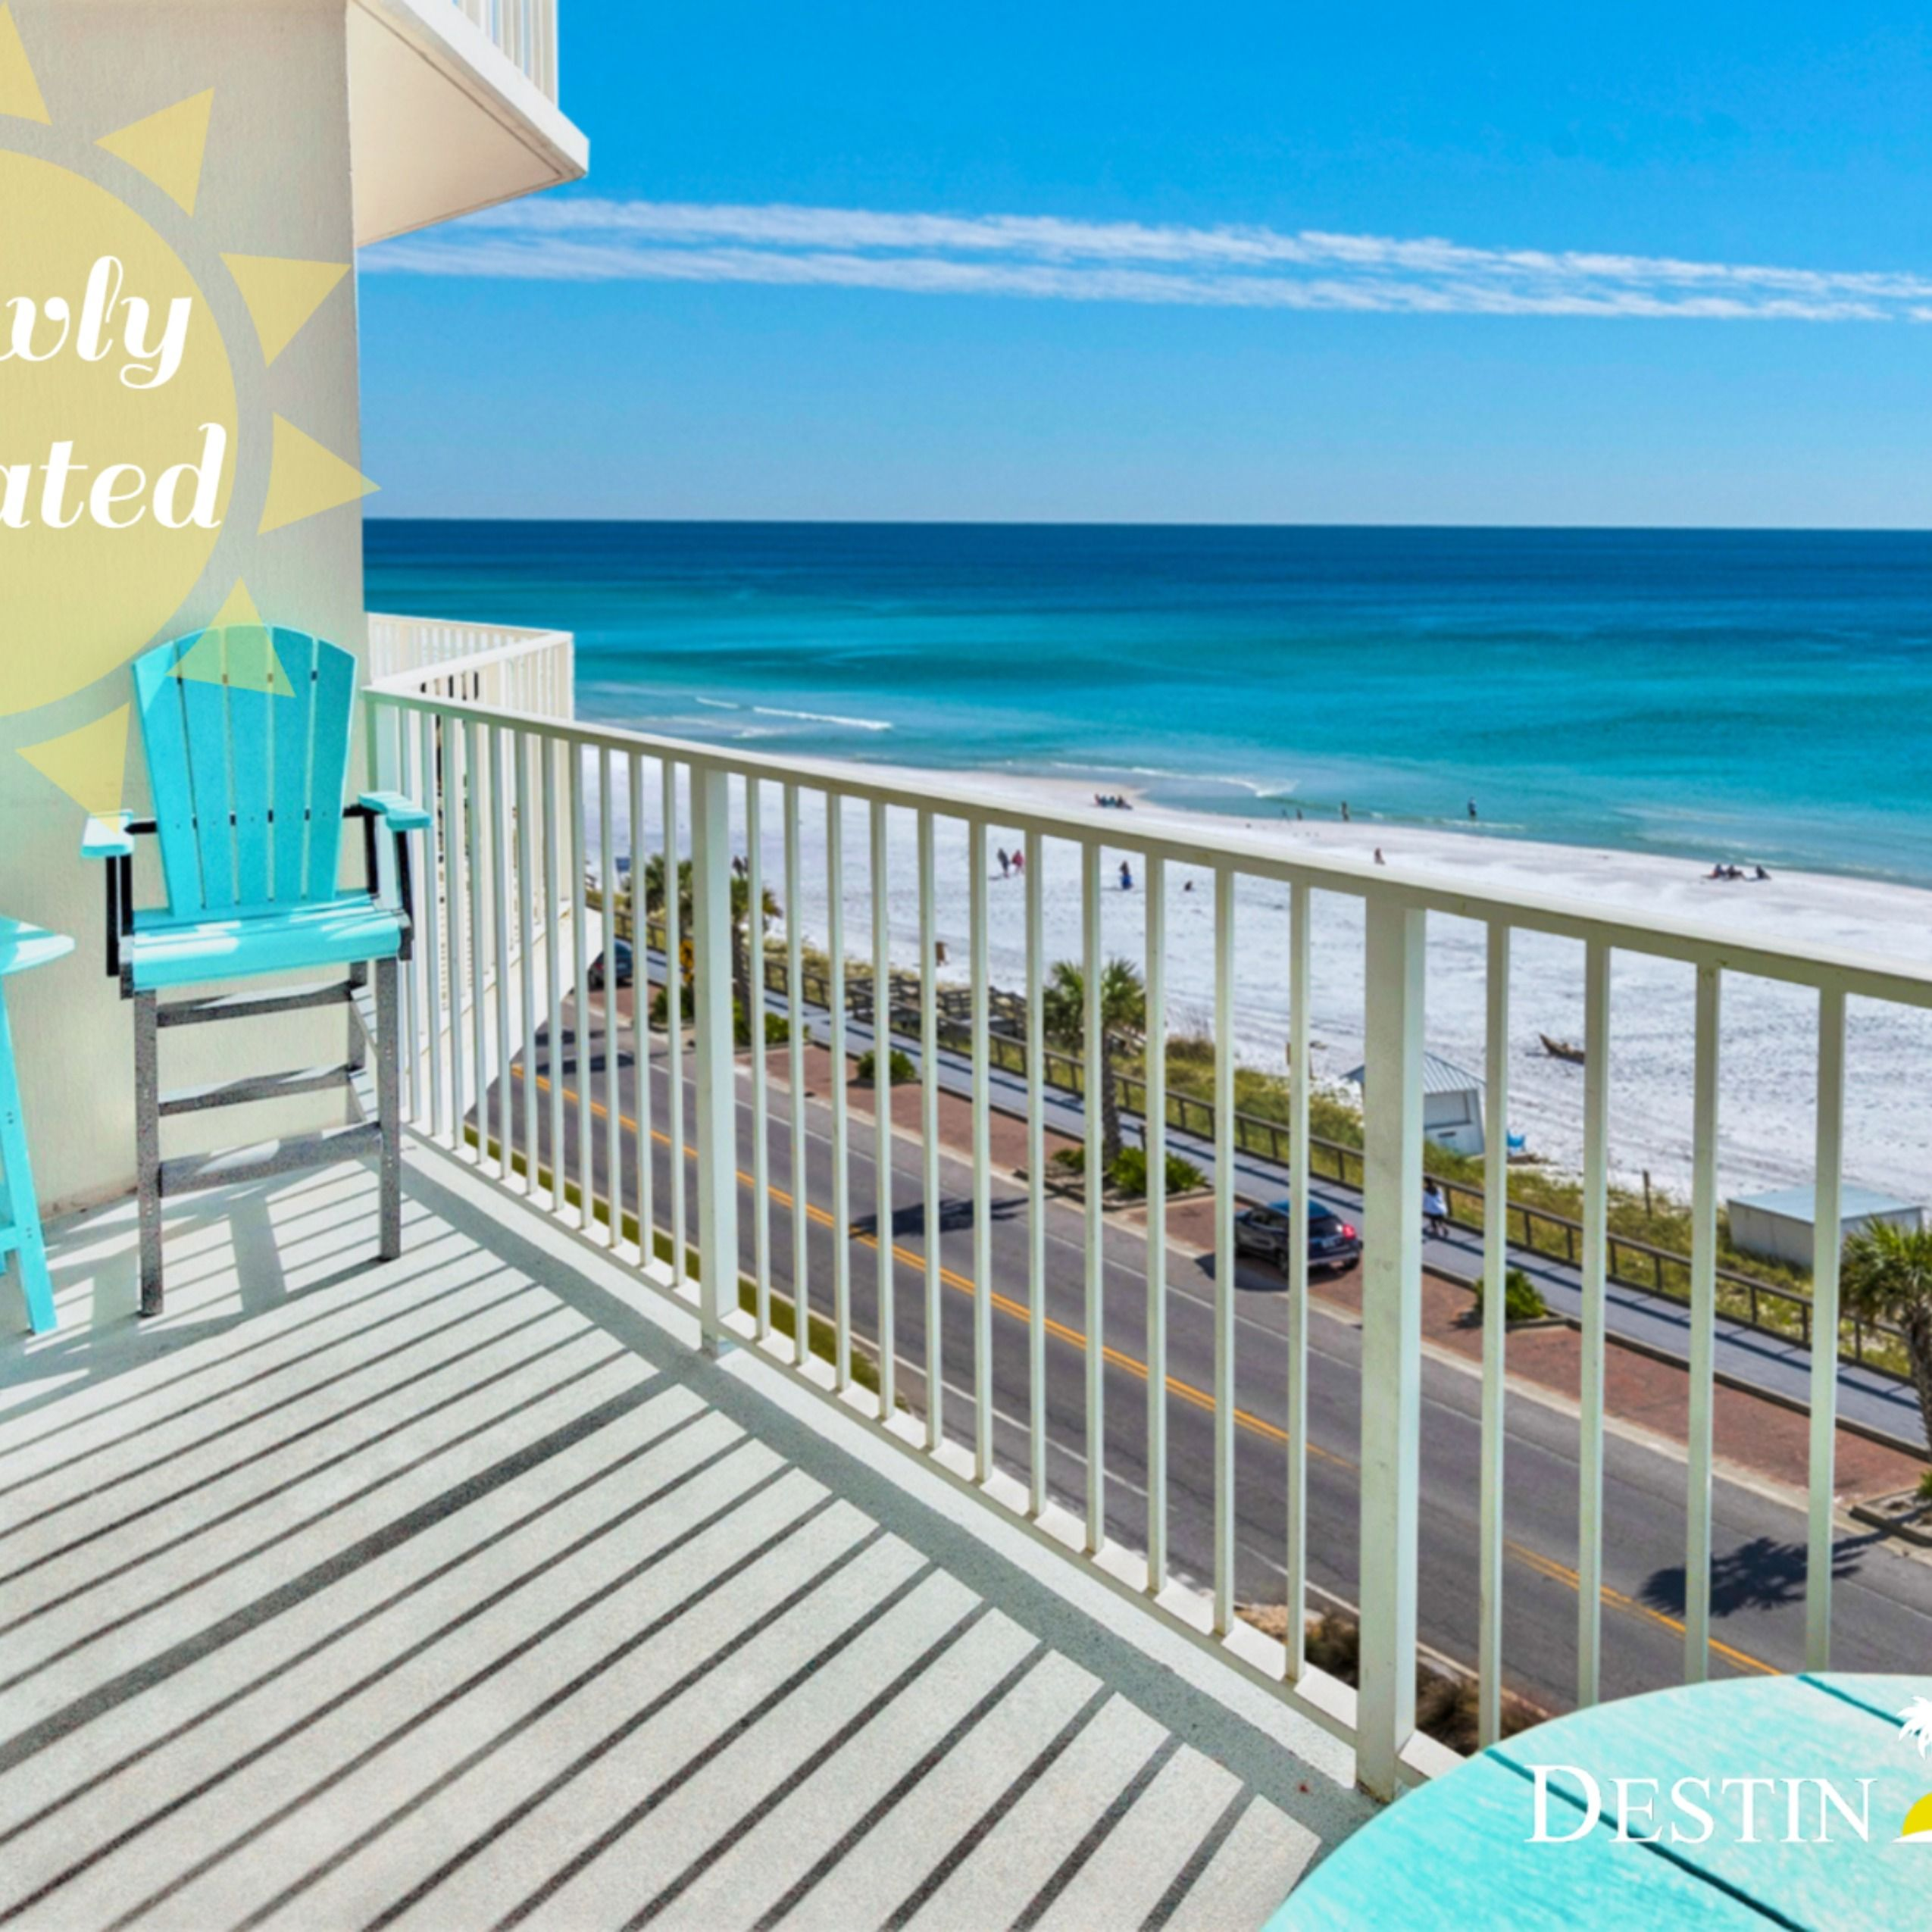 This 6th floor Majestic Sun 612B vacation rental condo in